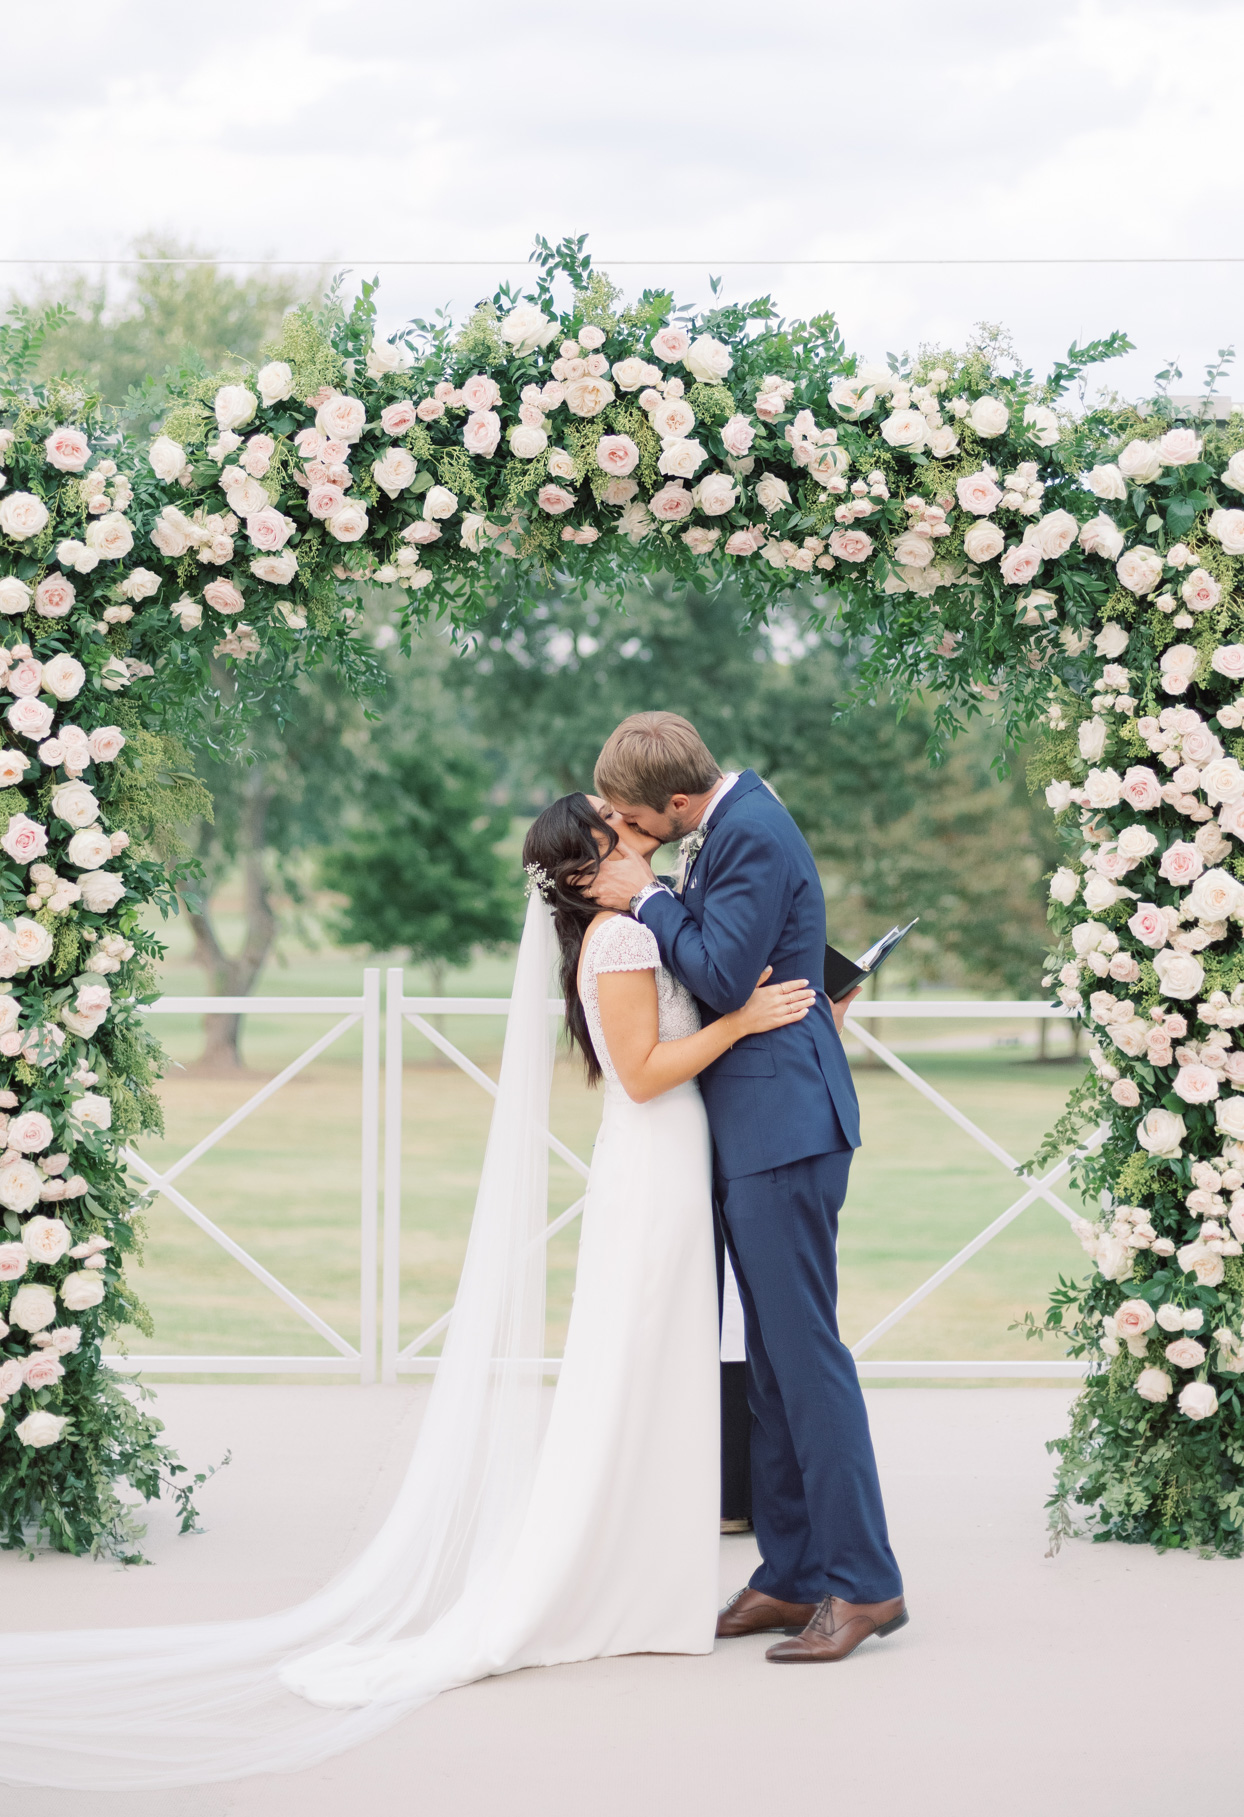 bride and groom kiss under floral arch during wedding ceremony